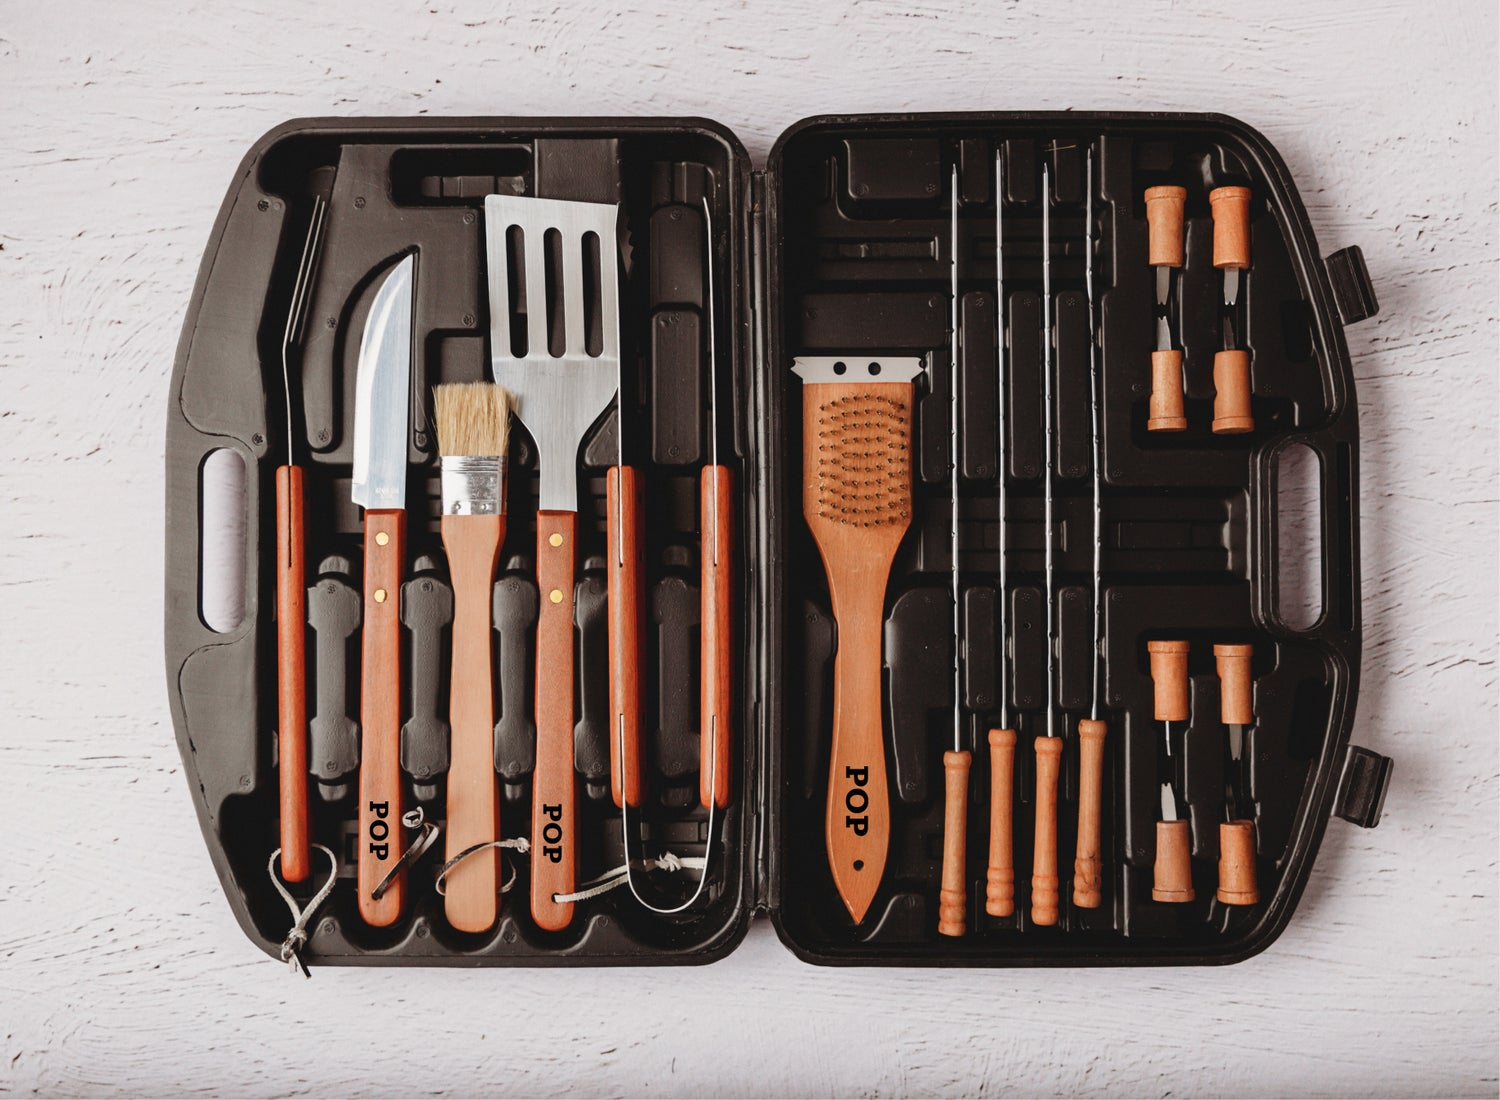 Image of 18 pce BBQ Tool Set - Grilled to Perfection